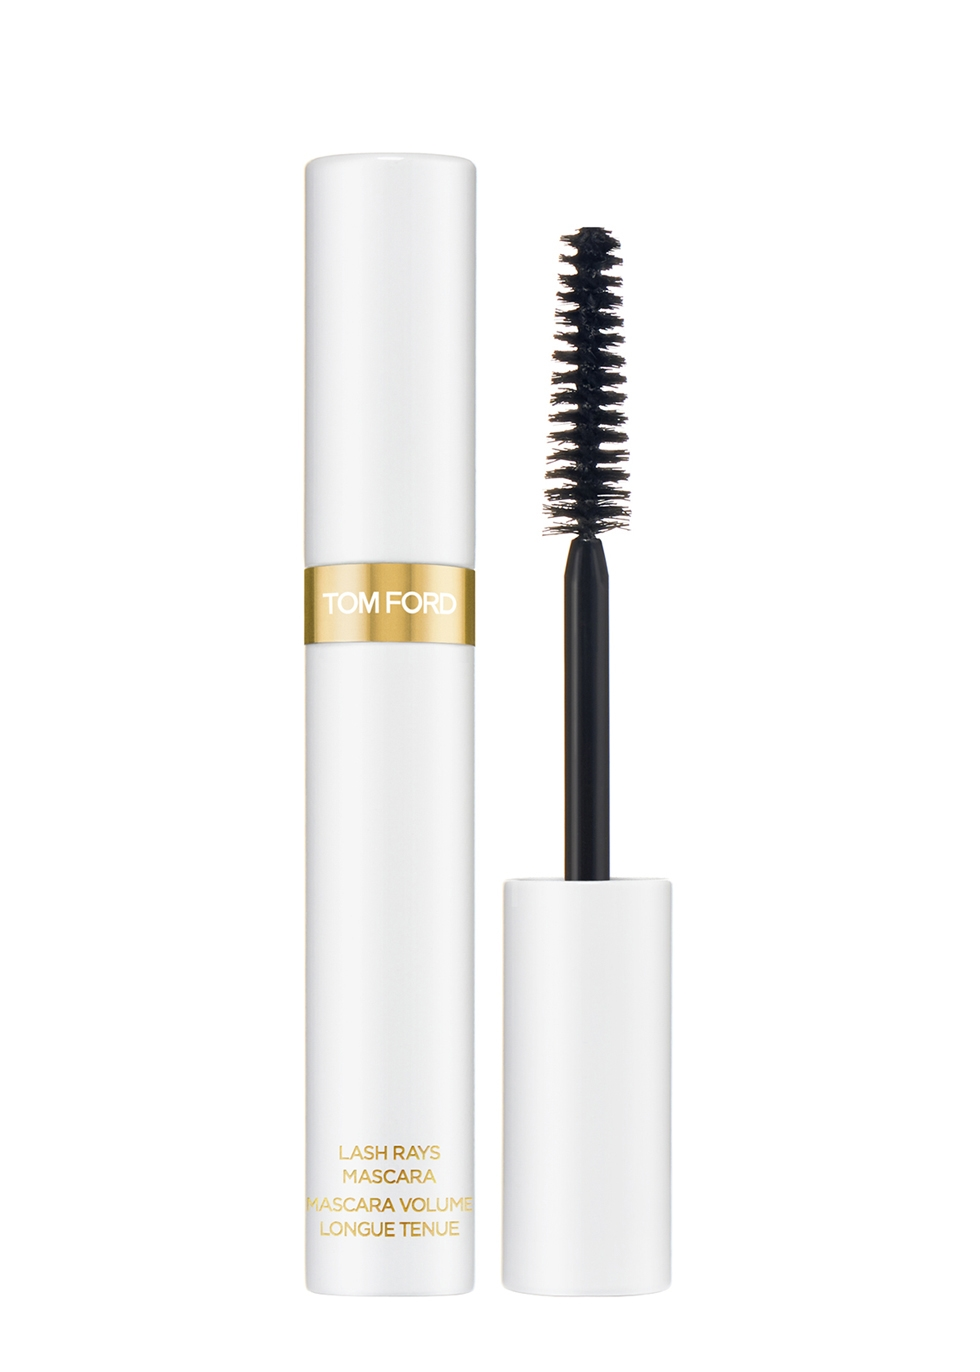 Lash Rays Mascara - Tom Ford